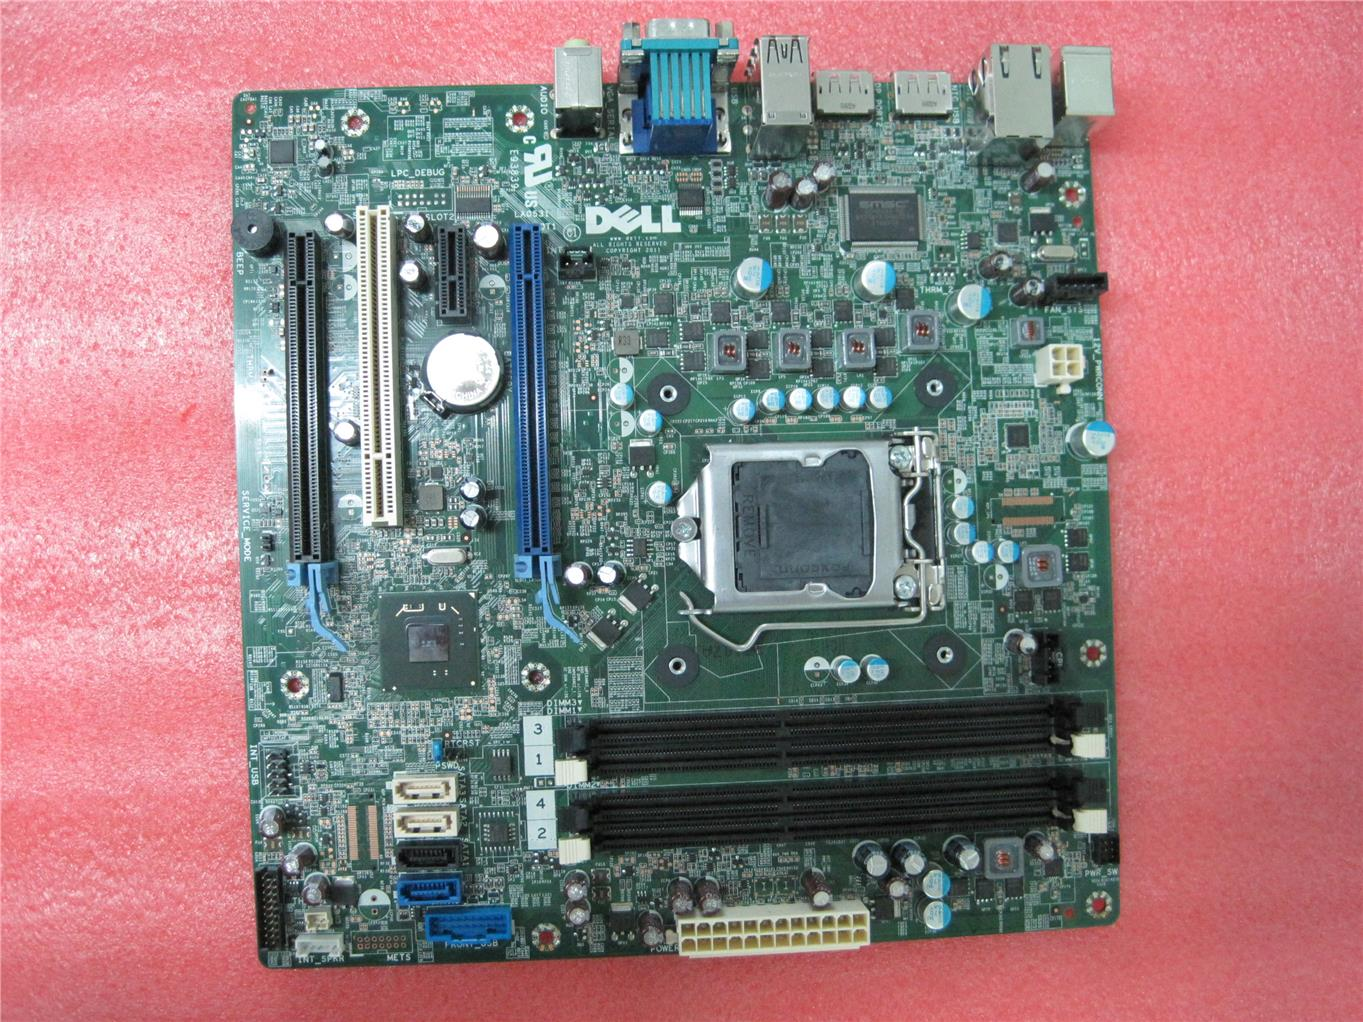 Dell Xps 15 Motherboard Diagram likewise Dell xps 13 laptop further Dell Motherboard Specs together with Dell Motherboard Schematic Diagram besides 19459563. on xps 8500 motherboard specs